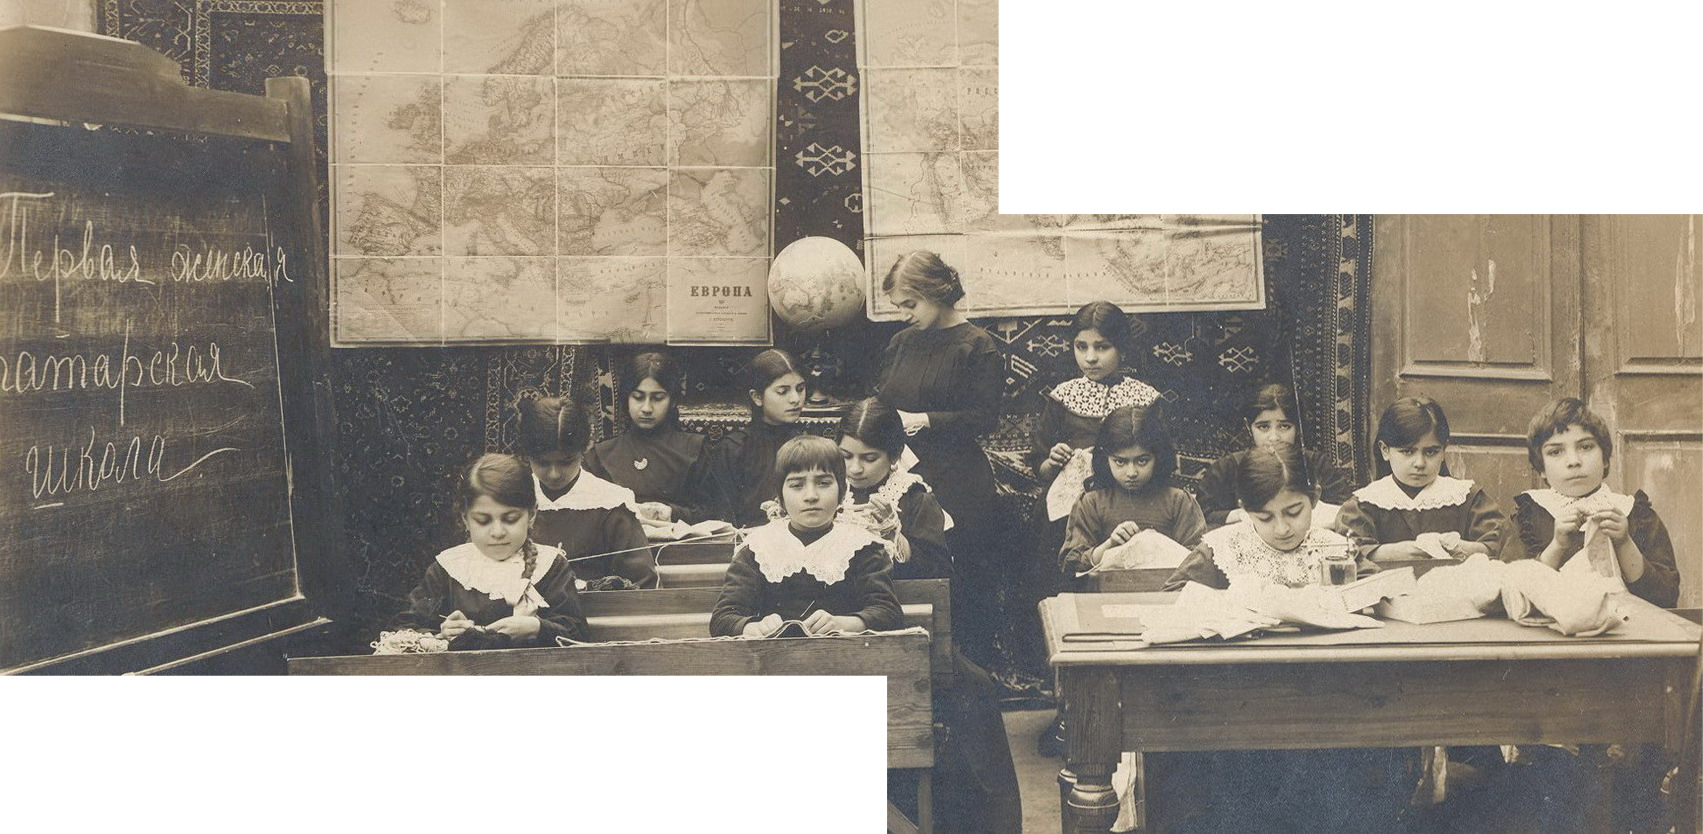 The text on the blackboard in this photo taken in 1911 says